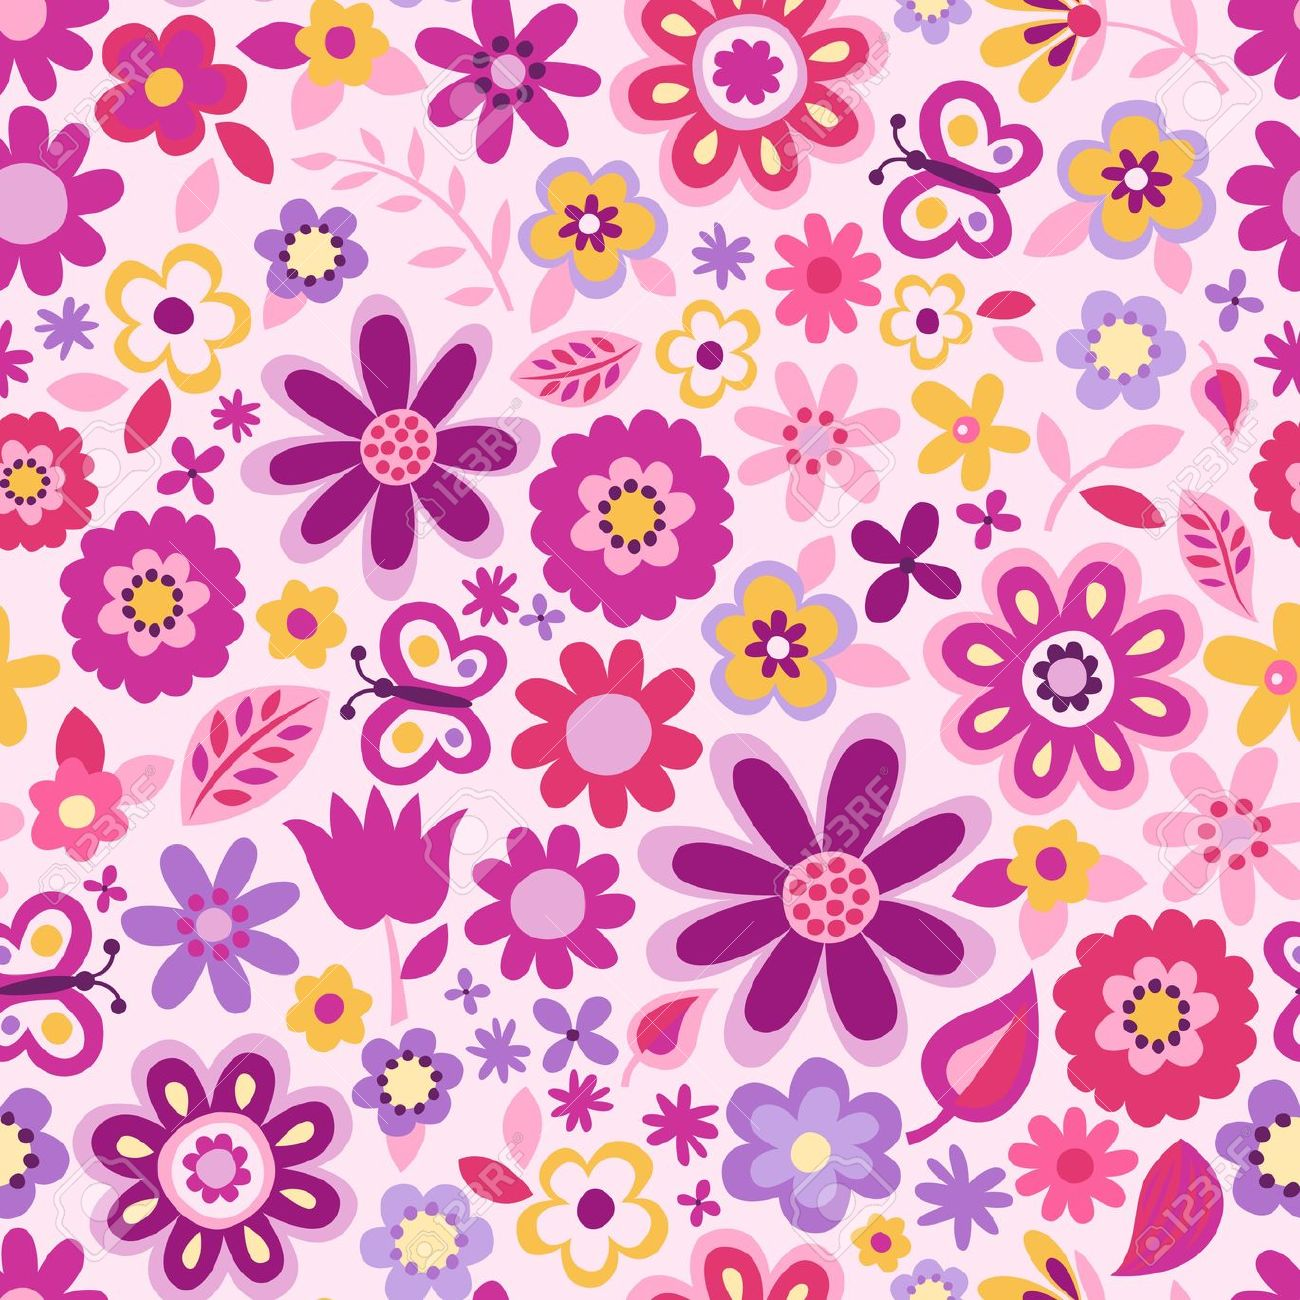 Cute vector wallpaper patterns collection 15 wallpapers wallpaper polkadot cute the wallpaper voltagebd Image collections